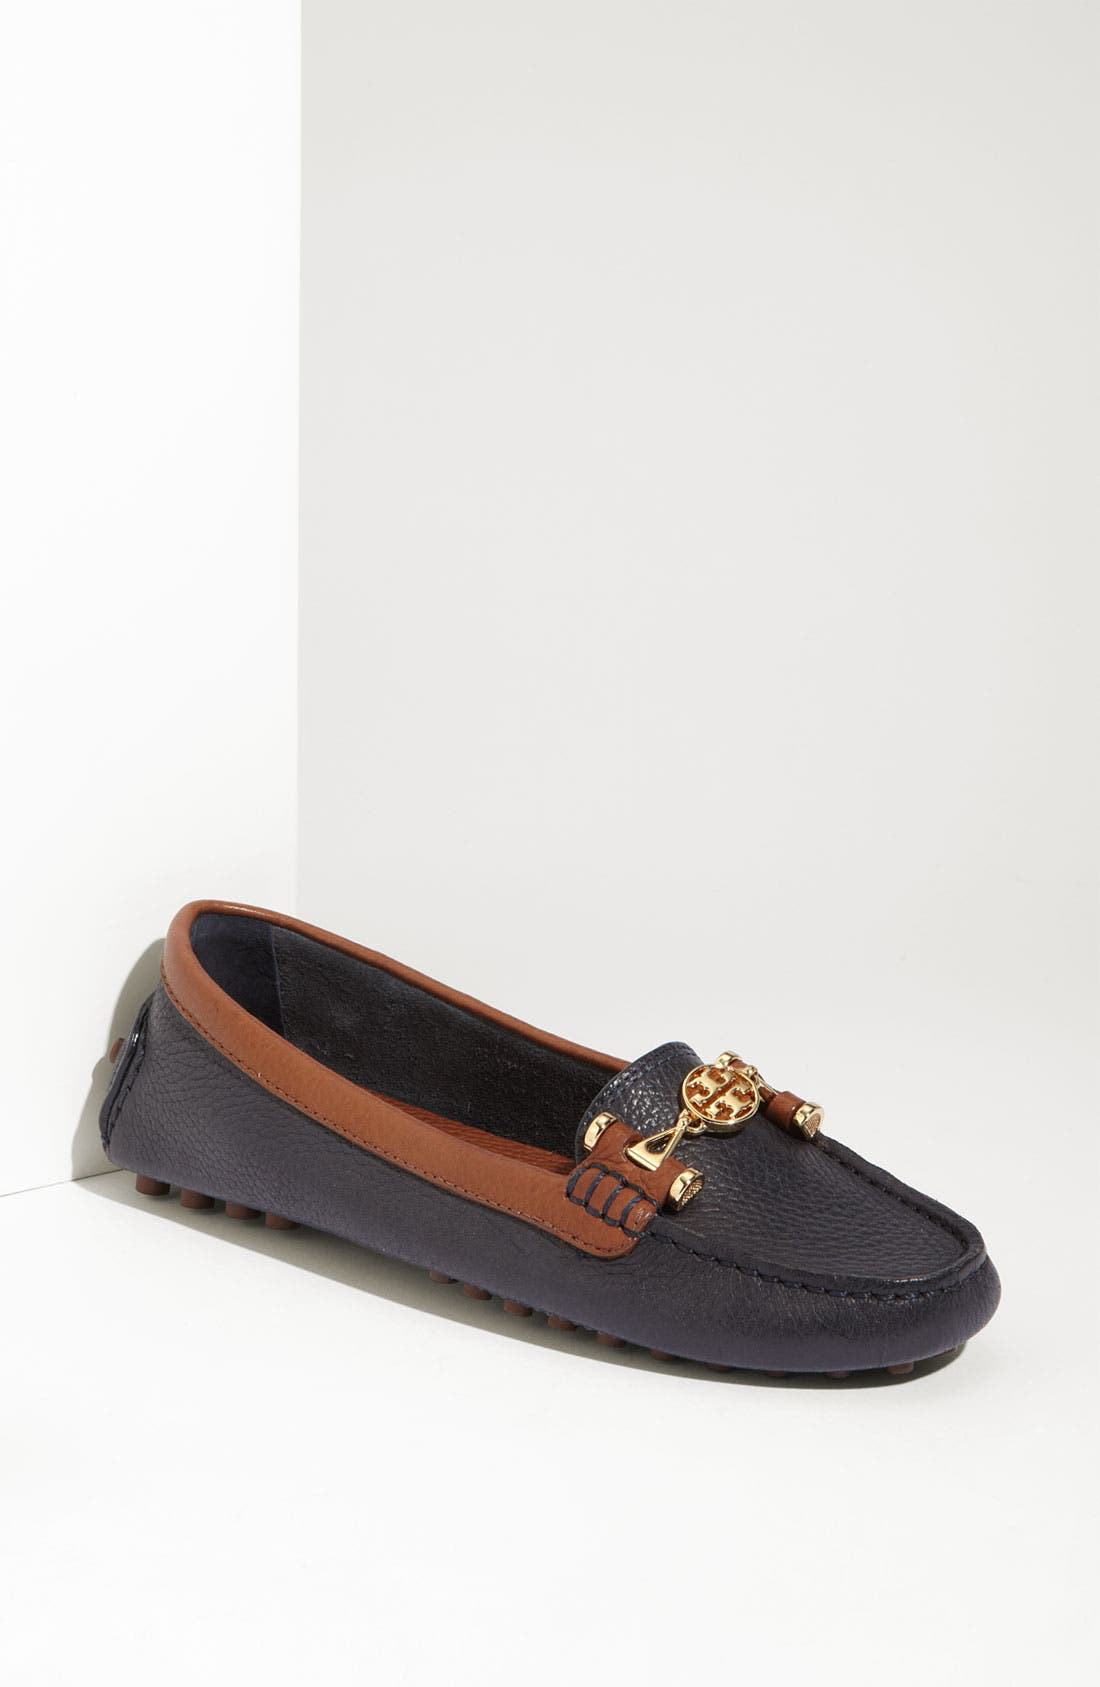 Main Image - Tory Burch 'Daria' Driving Moccasin